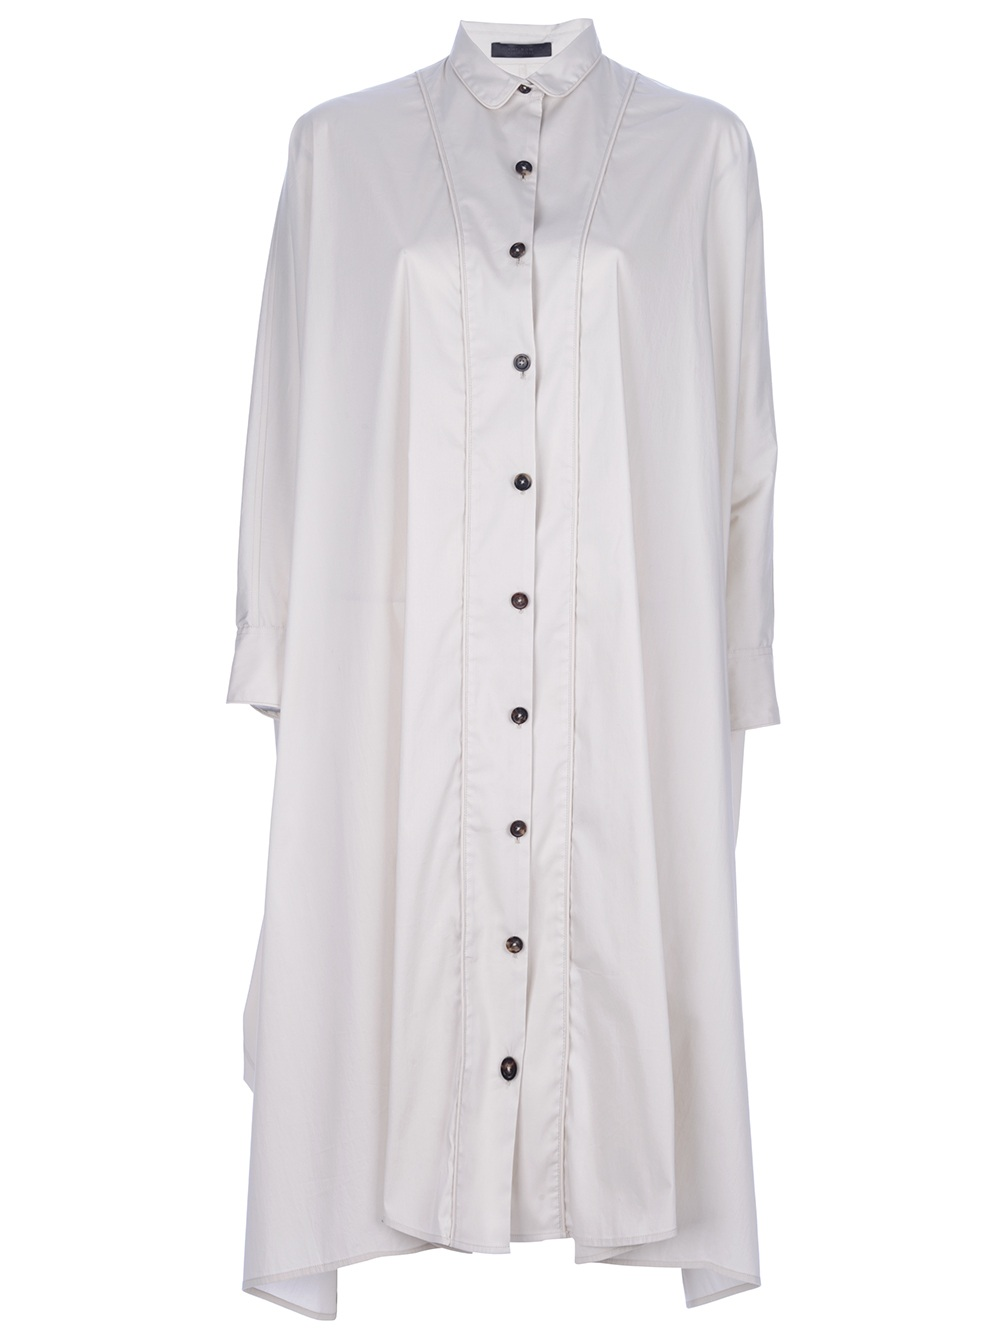 Lyst The Row Oversized Shirt Dress In White